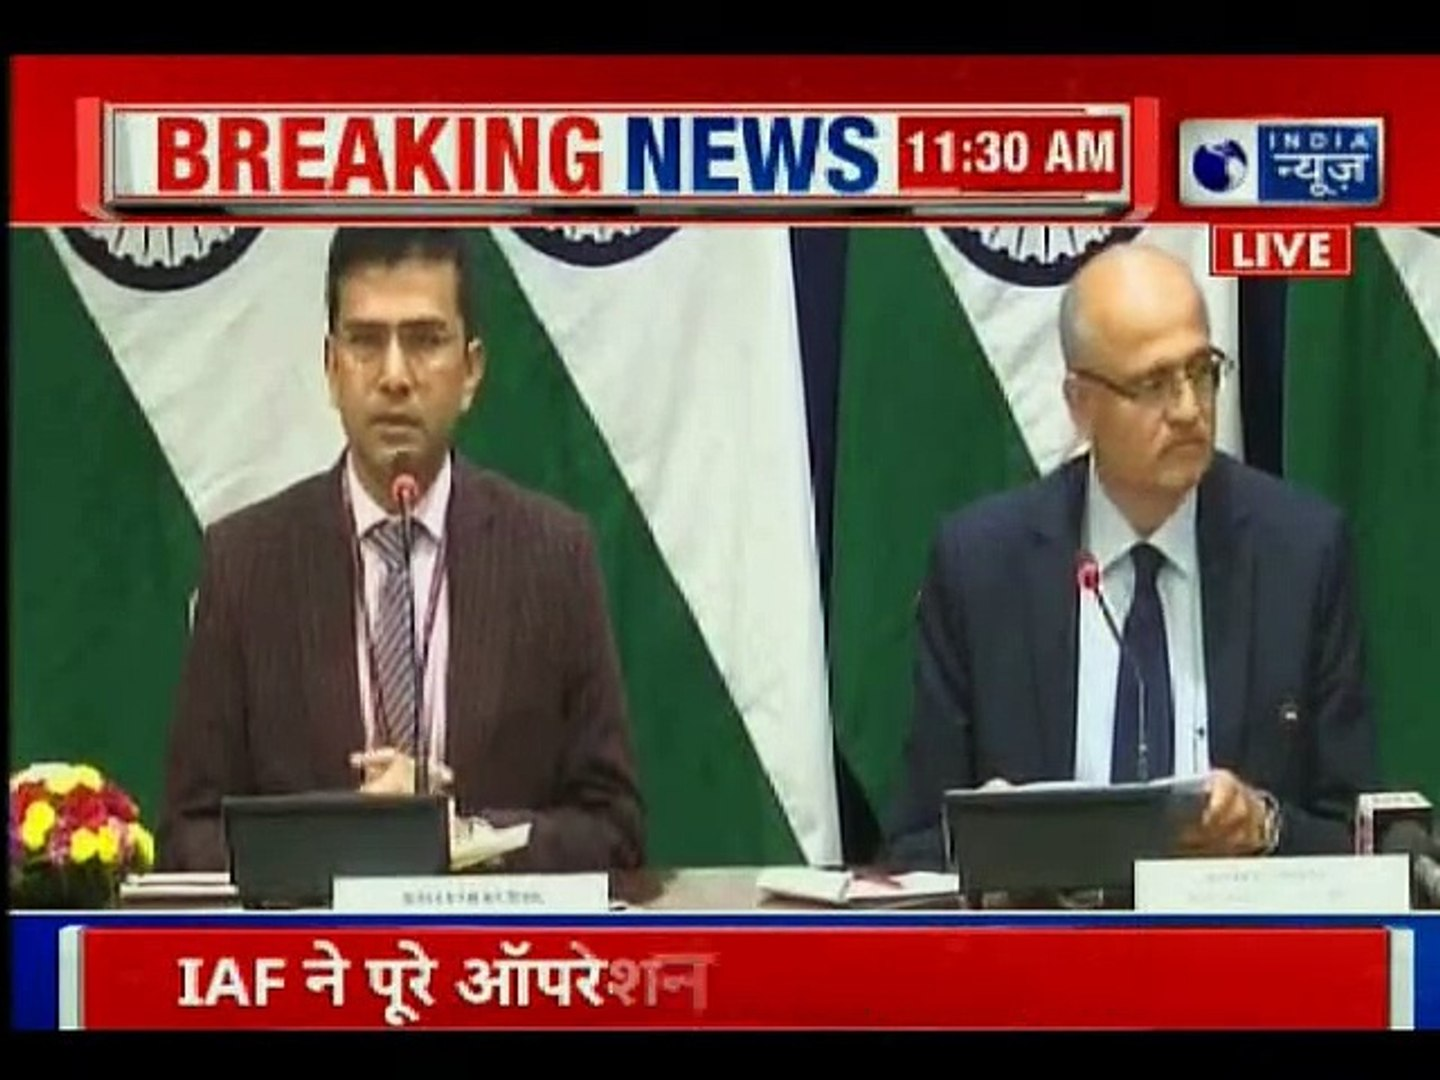 Foreign Minister Vijay Gokhale confrims IAF attack on Pakistan | Srugical Strike 2.0 Live Updates